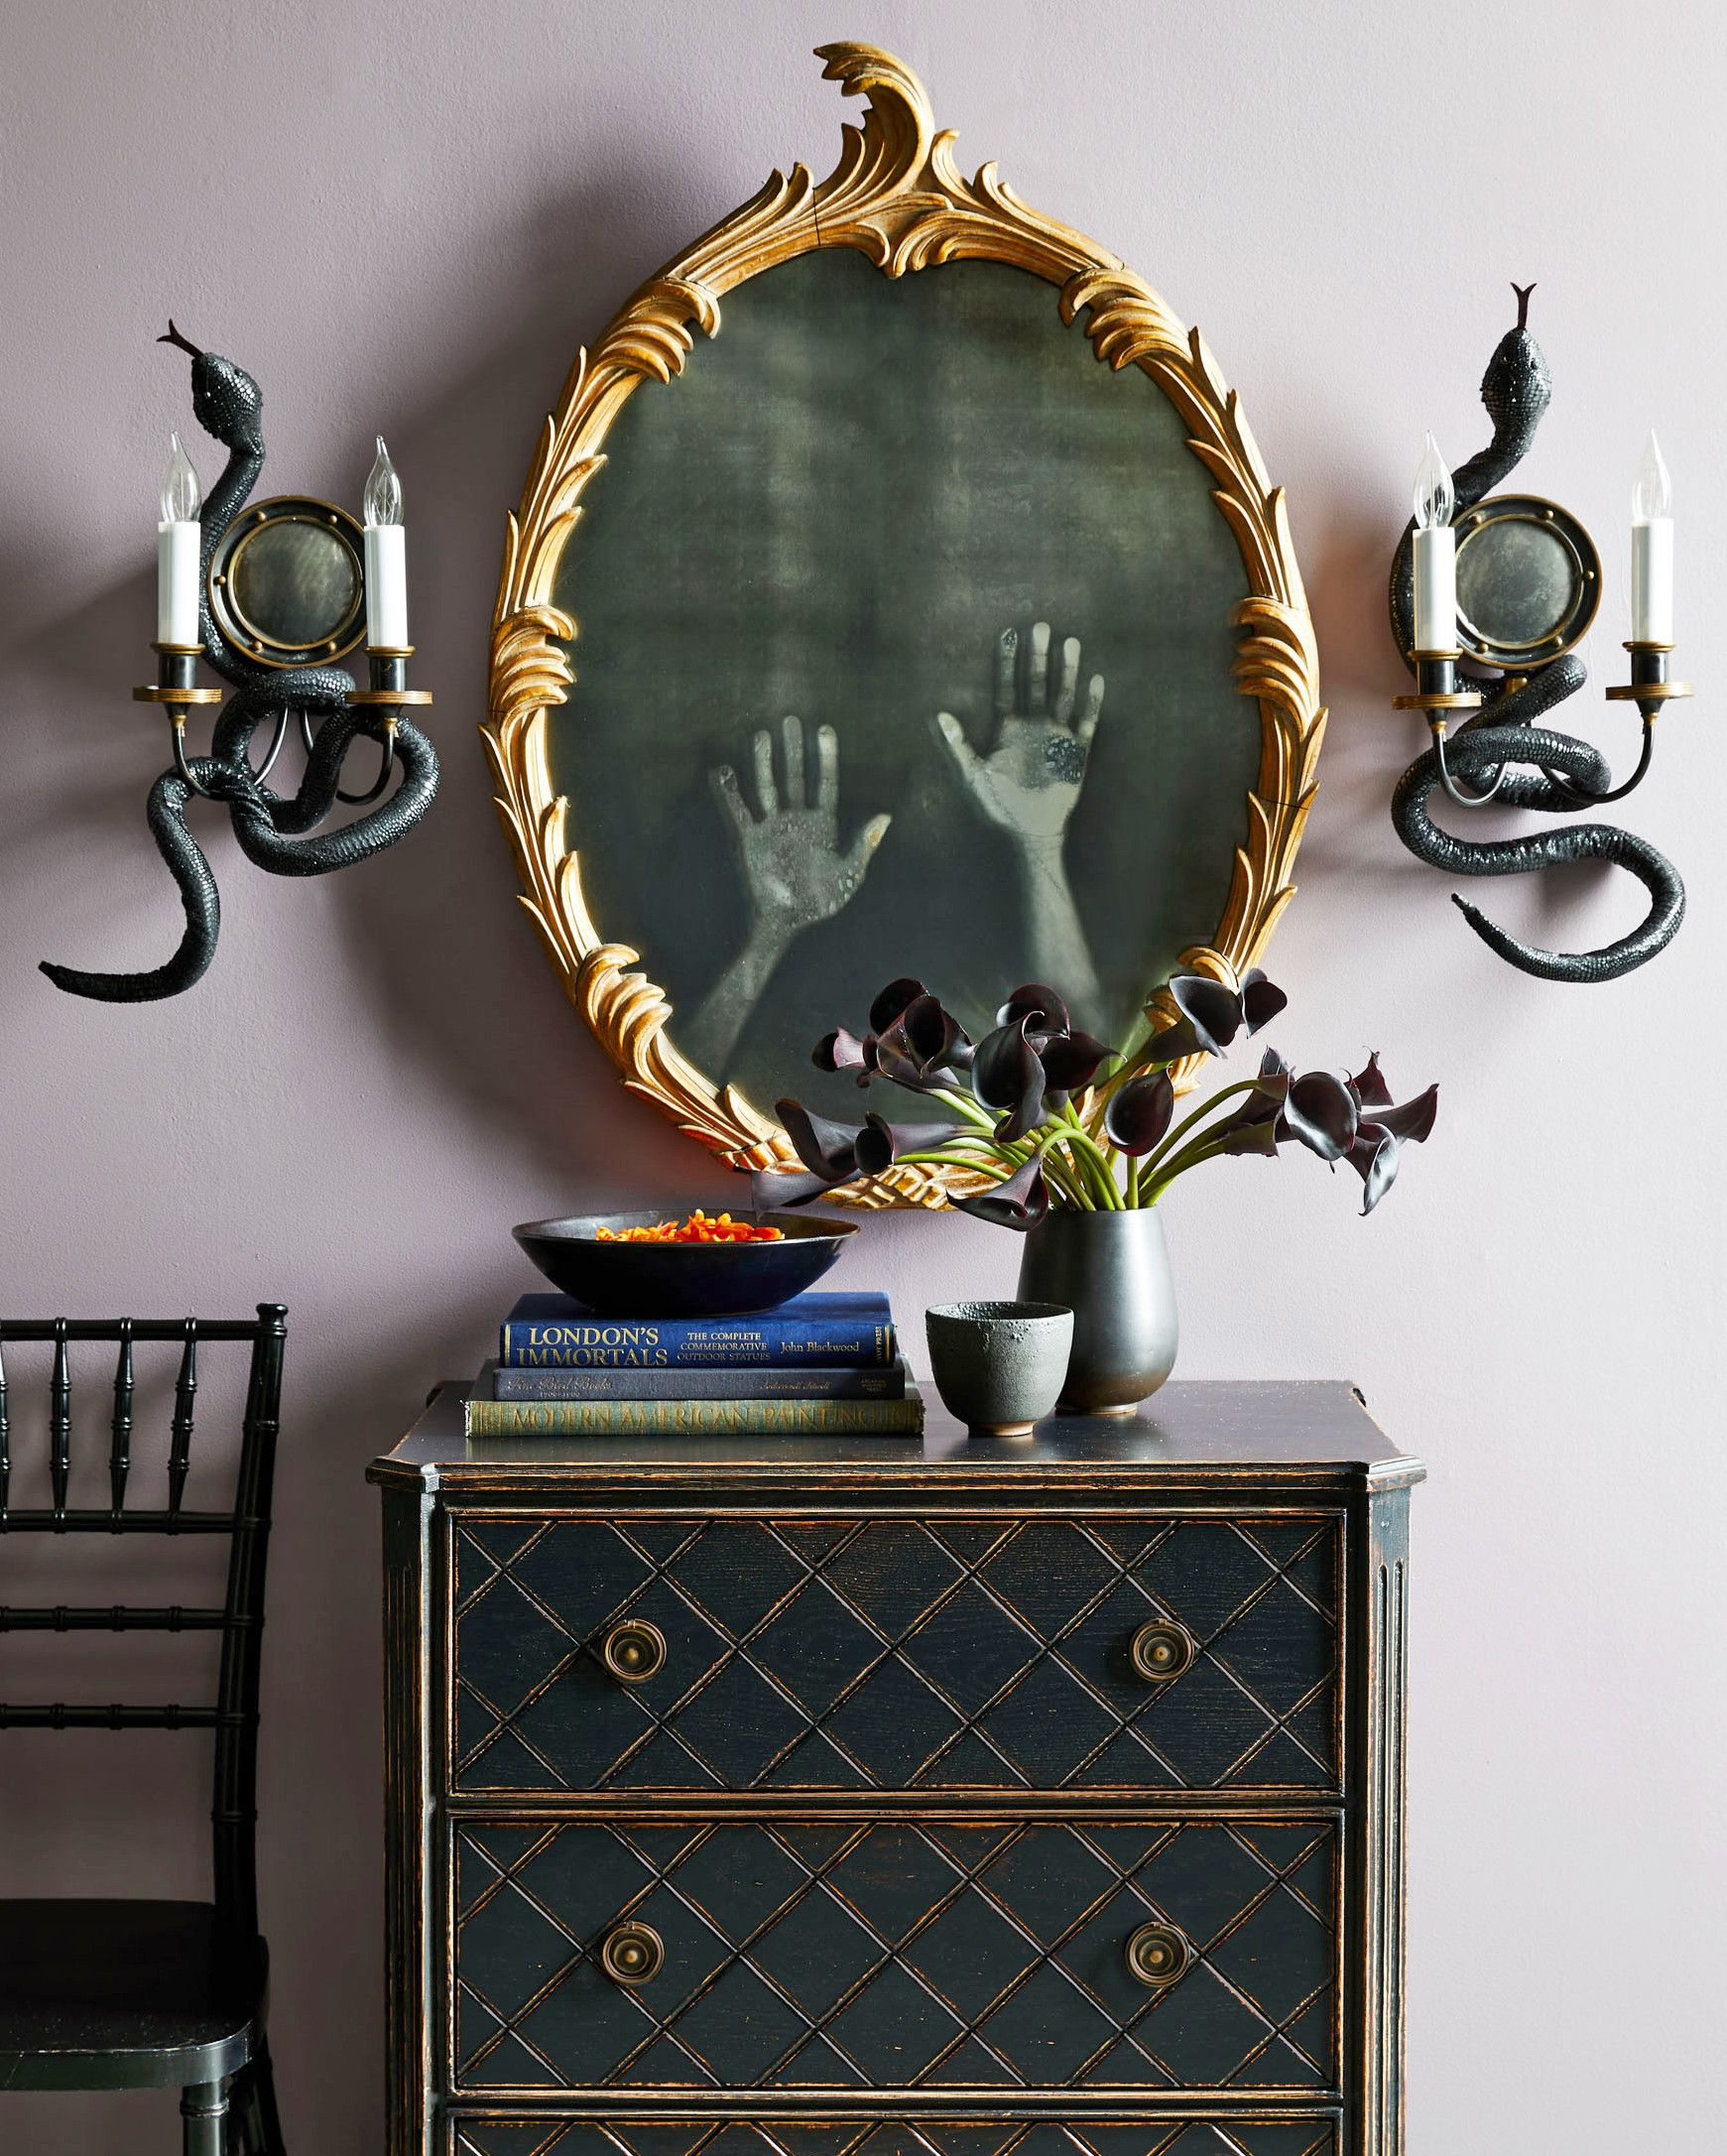 Haunted Mirror with Ghost Hands Scary halloween